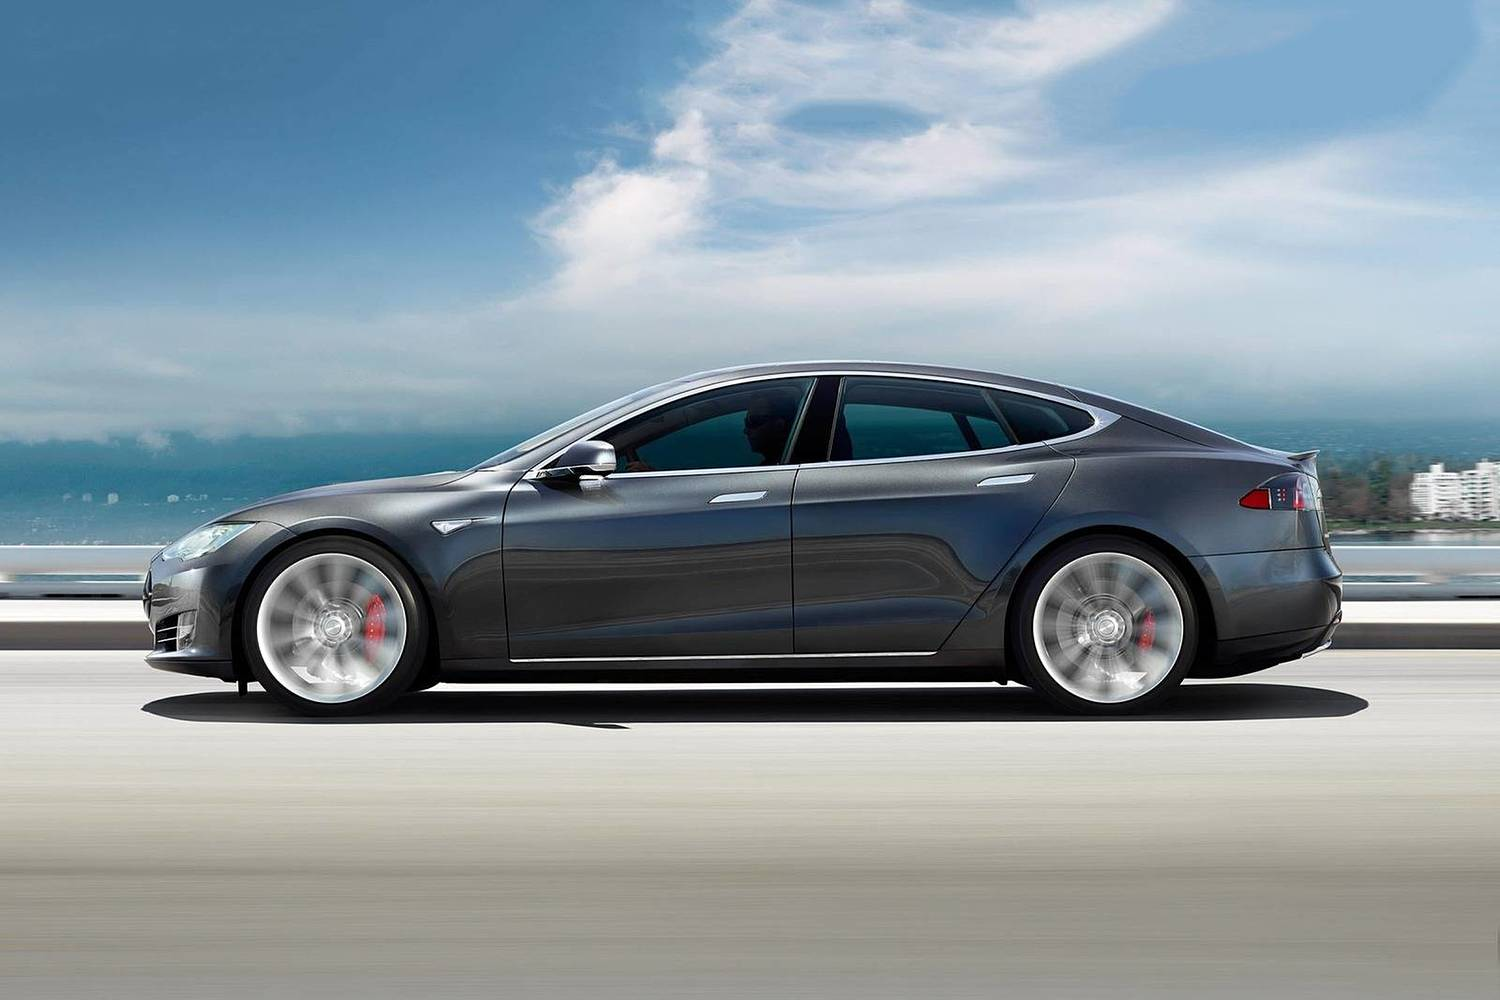 2017 Tesla Model S P100D Sedan Exterior Shown.